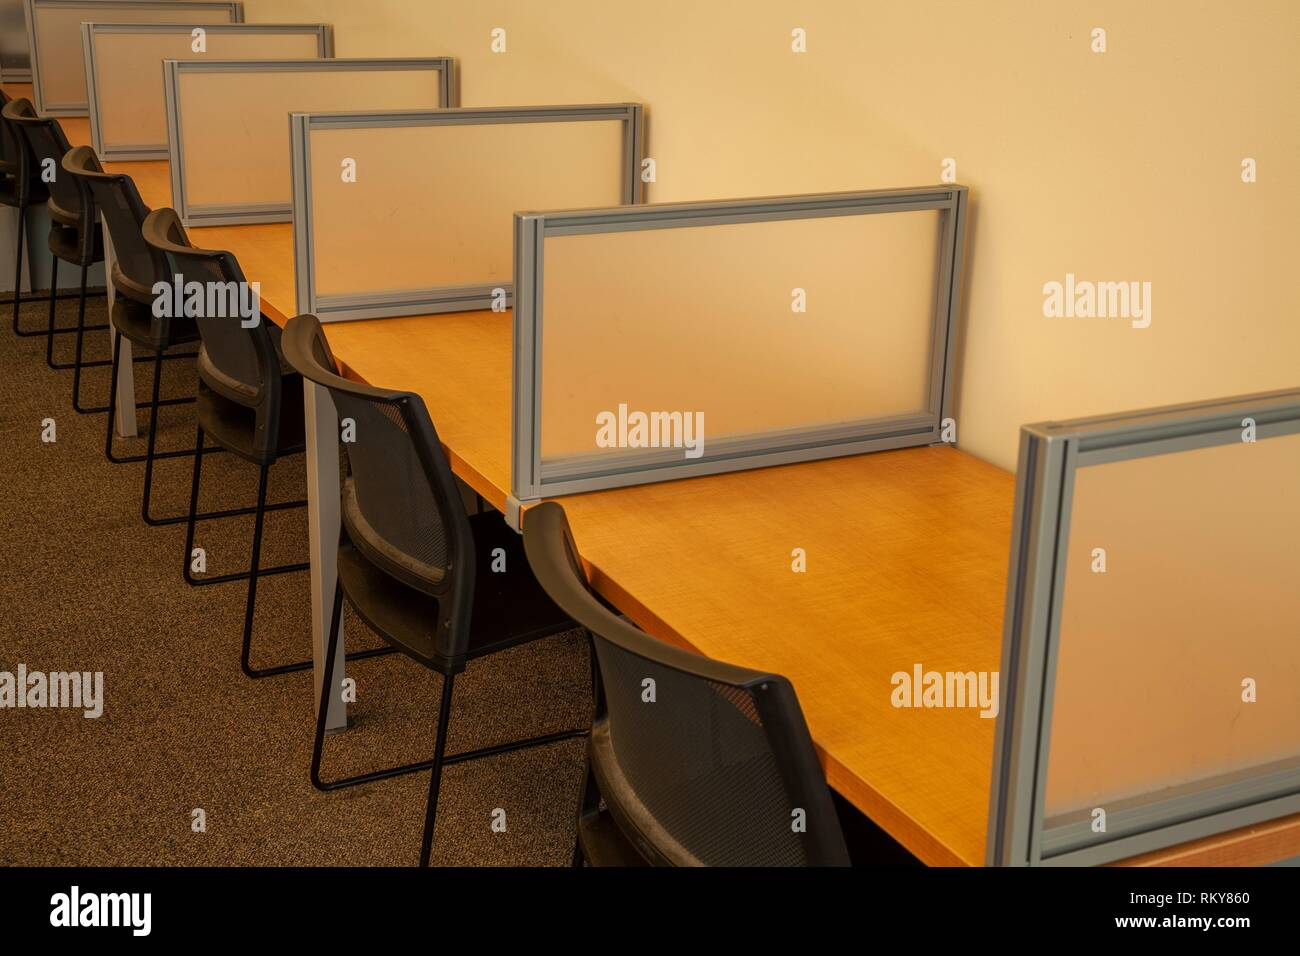 Student work stations in a college. - Stock Image